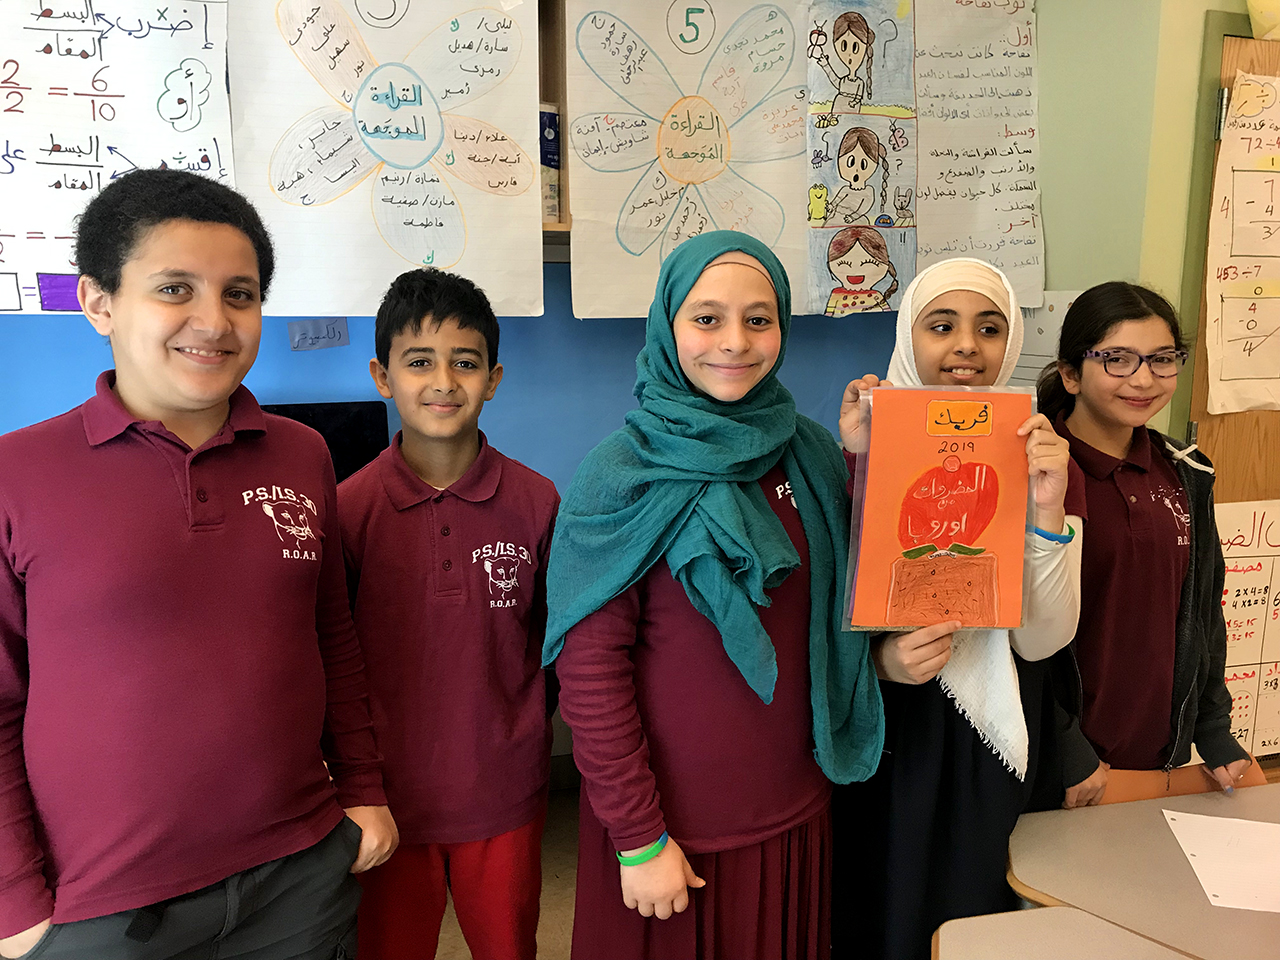 Green Bronx Machine is proud to partner with Qatar Foundation International to create a global community of diverse learners and educators and connect them through effective collaborative learning environments both inside and outside of the classroom. Qatar Foundation International translated the Green...